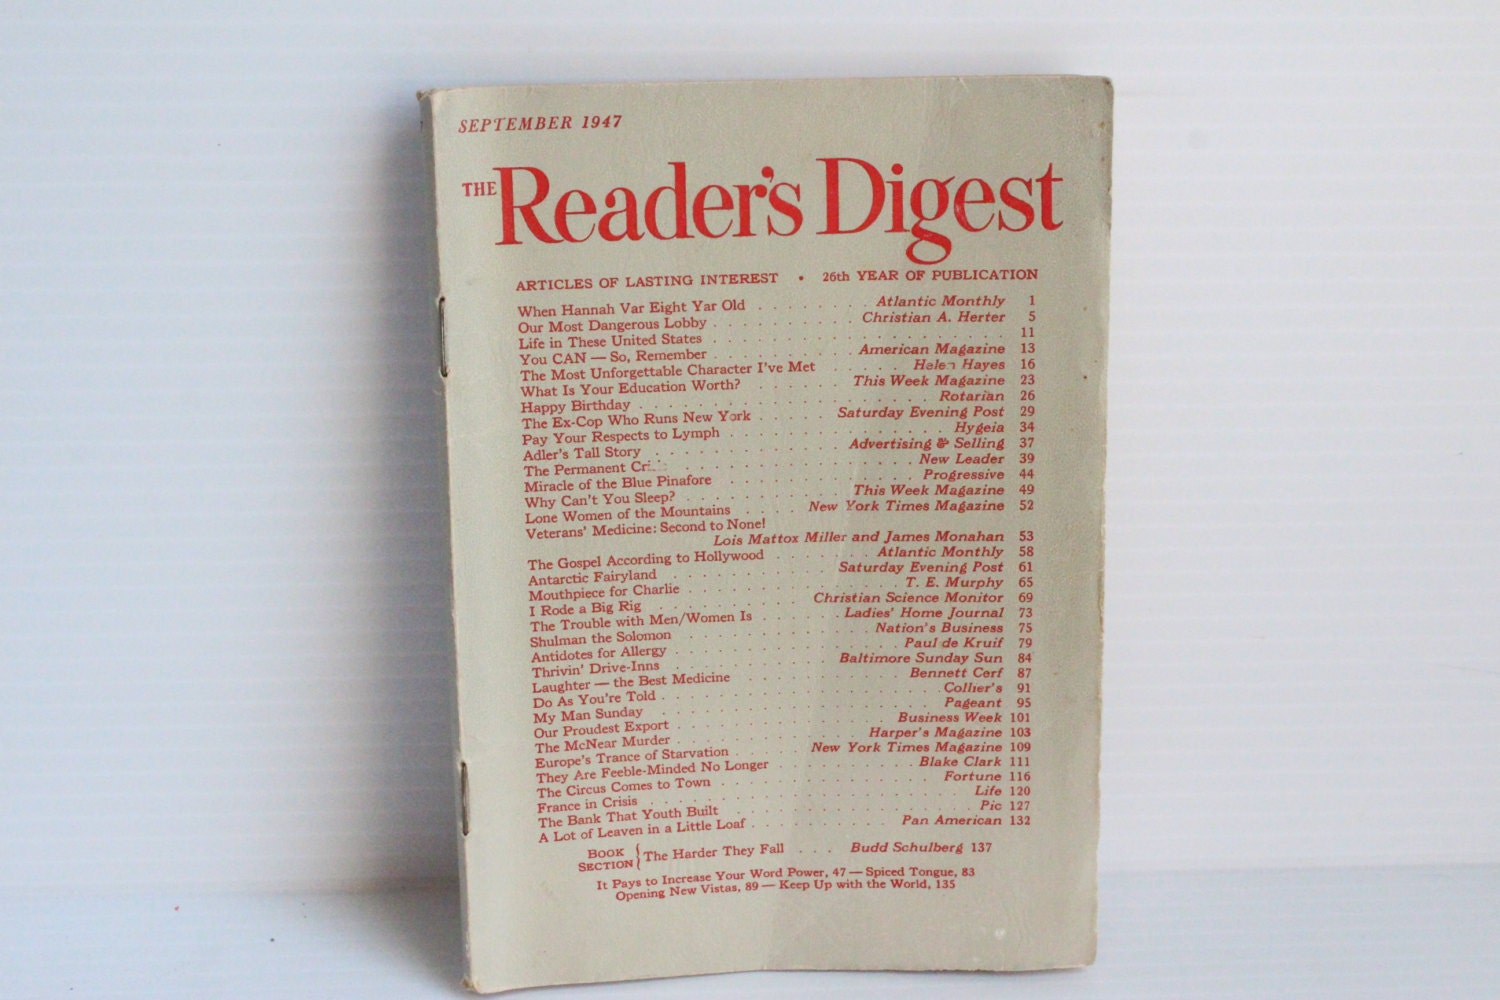 READER'S DIGEST September 1947 Vintage Magazine Vintage